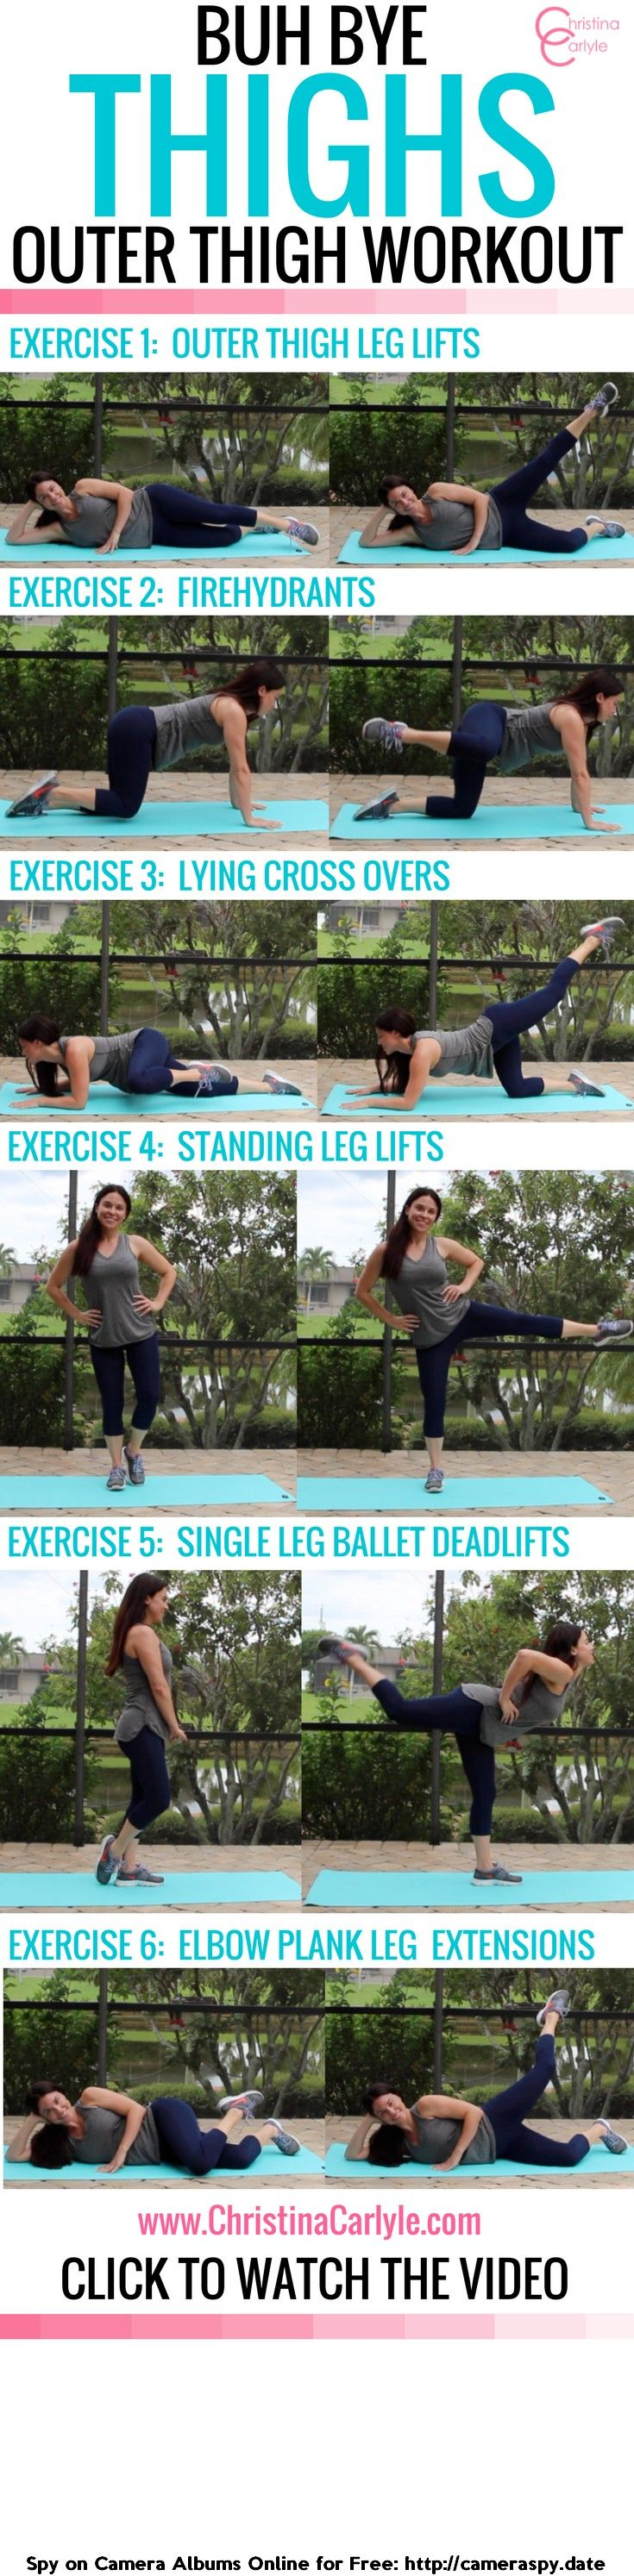 Do your thighs make you self-conscious? If so, you#39;re going to love the thigh Exercises in this Outer Thigh Workout for women. They really work!